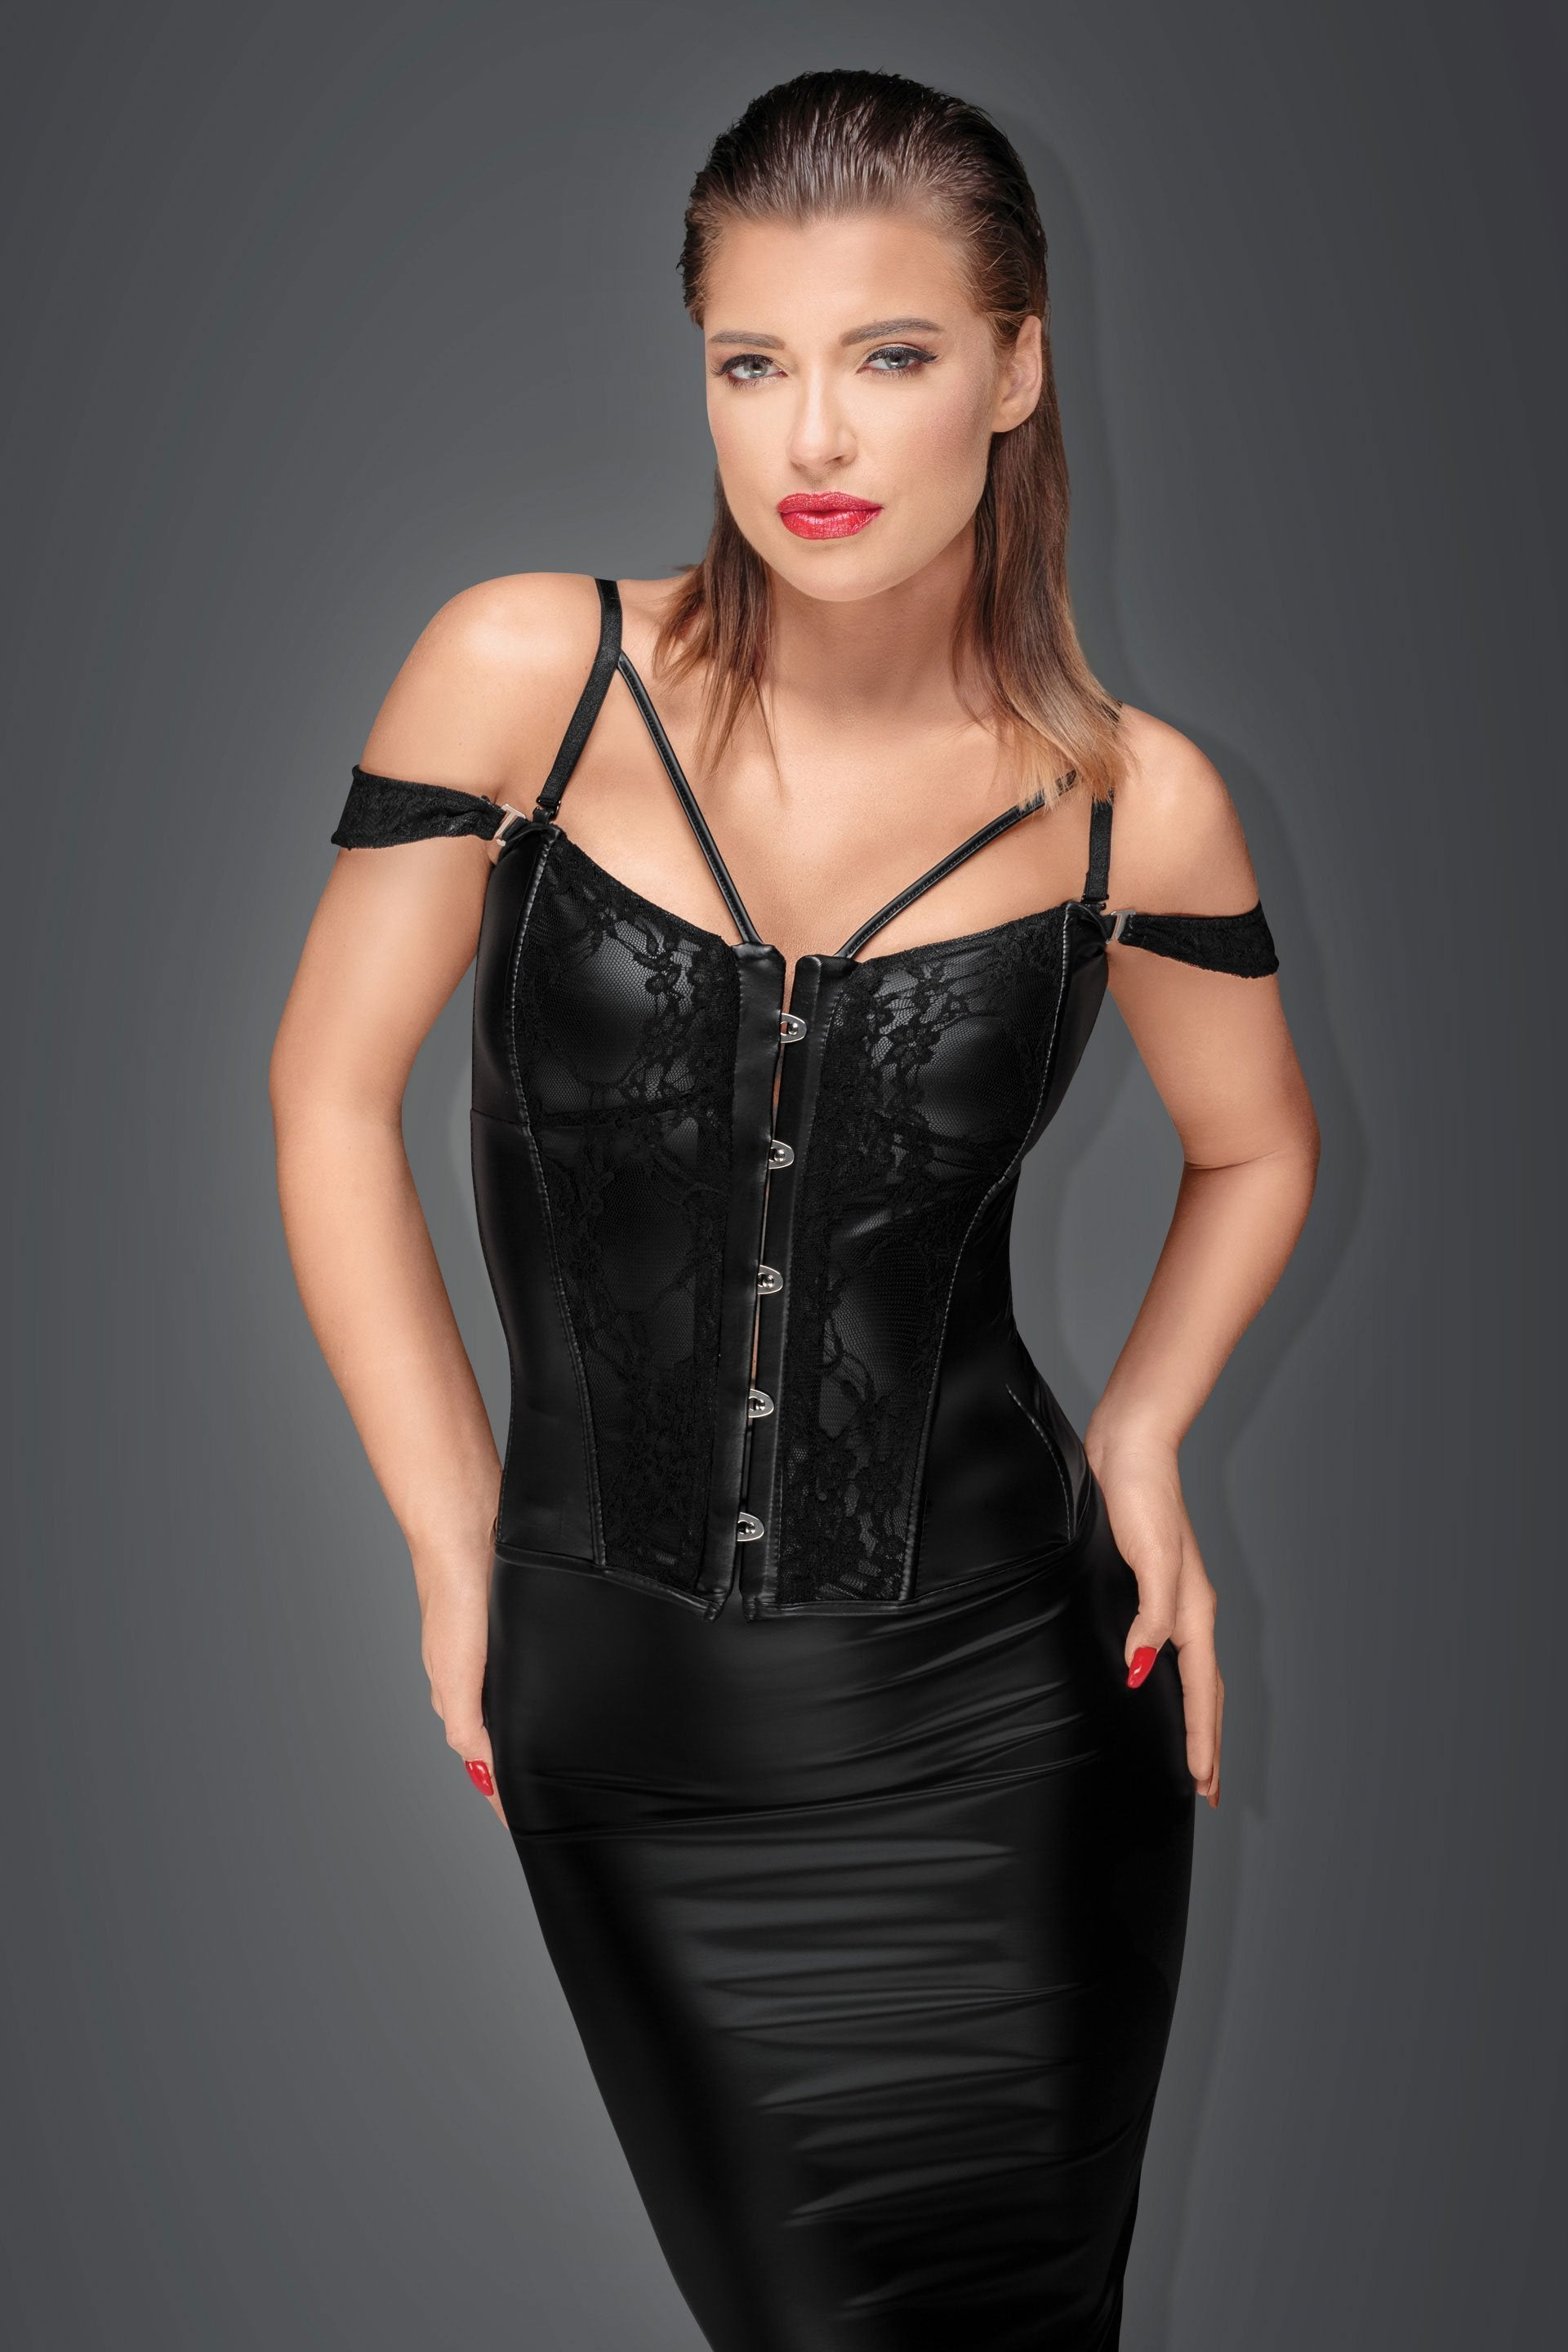 Noir Handmade corset UK 8 / Black Power Wetlook Corset F159 by Noir Handmade